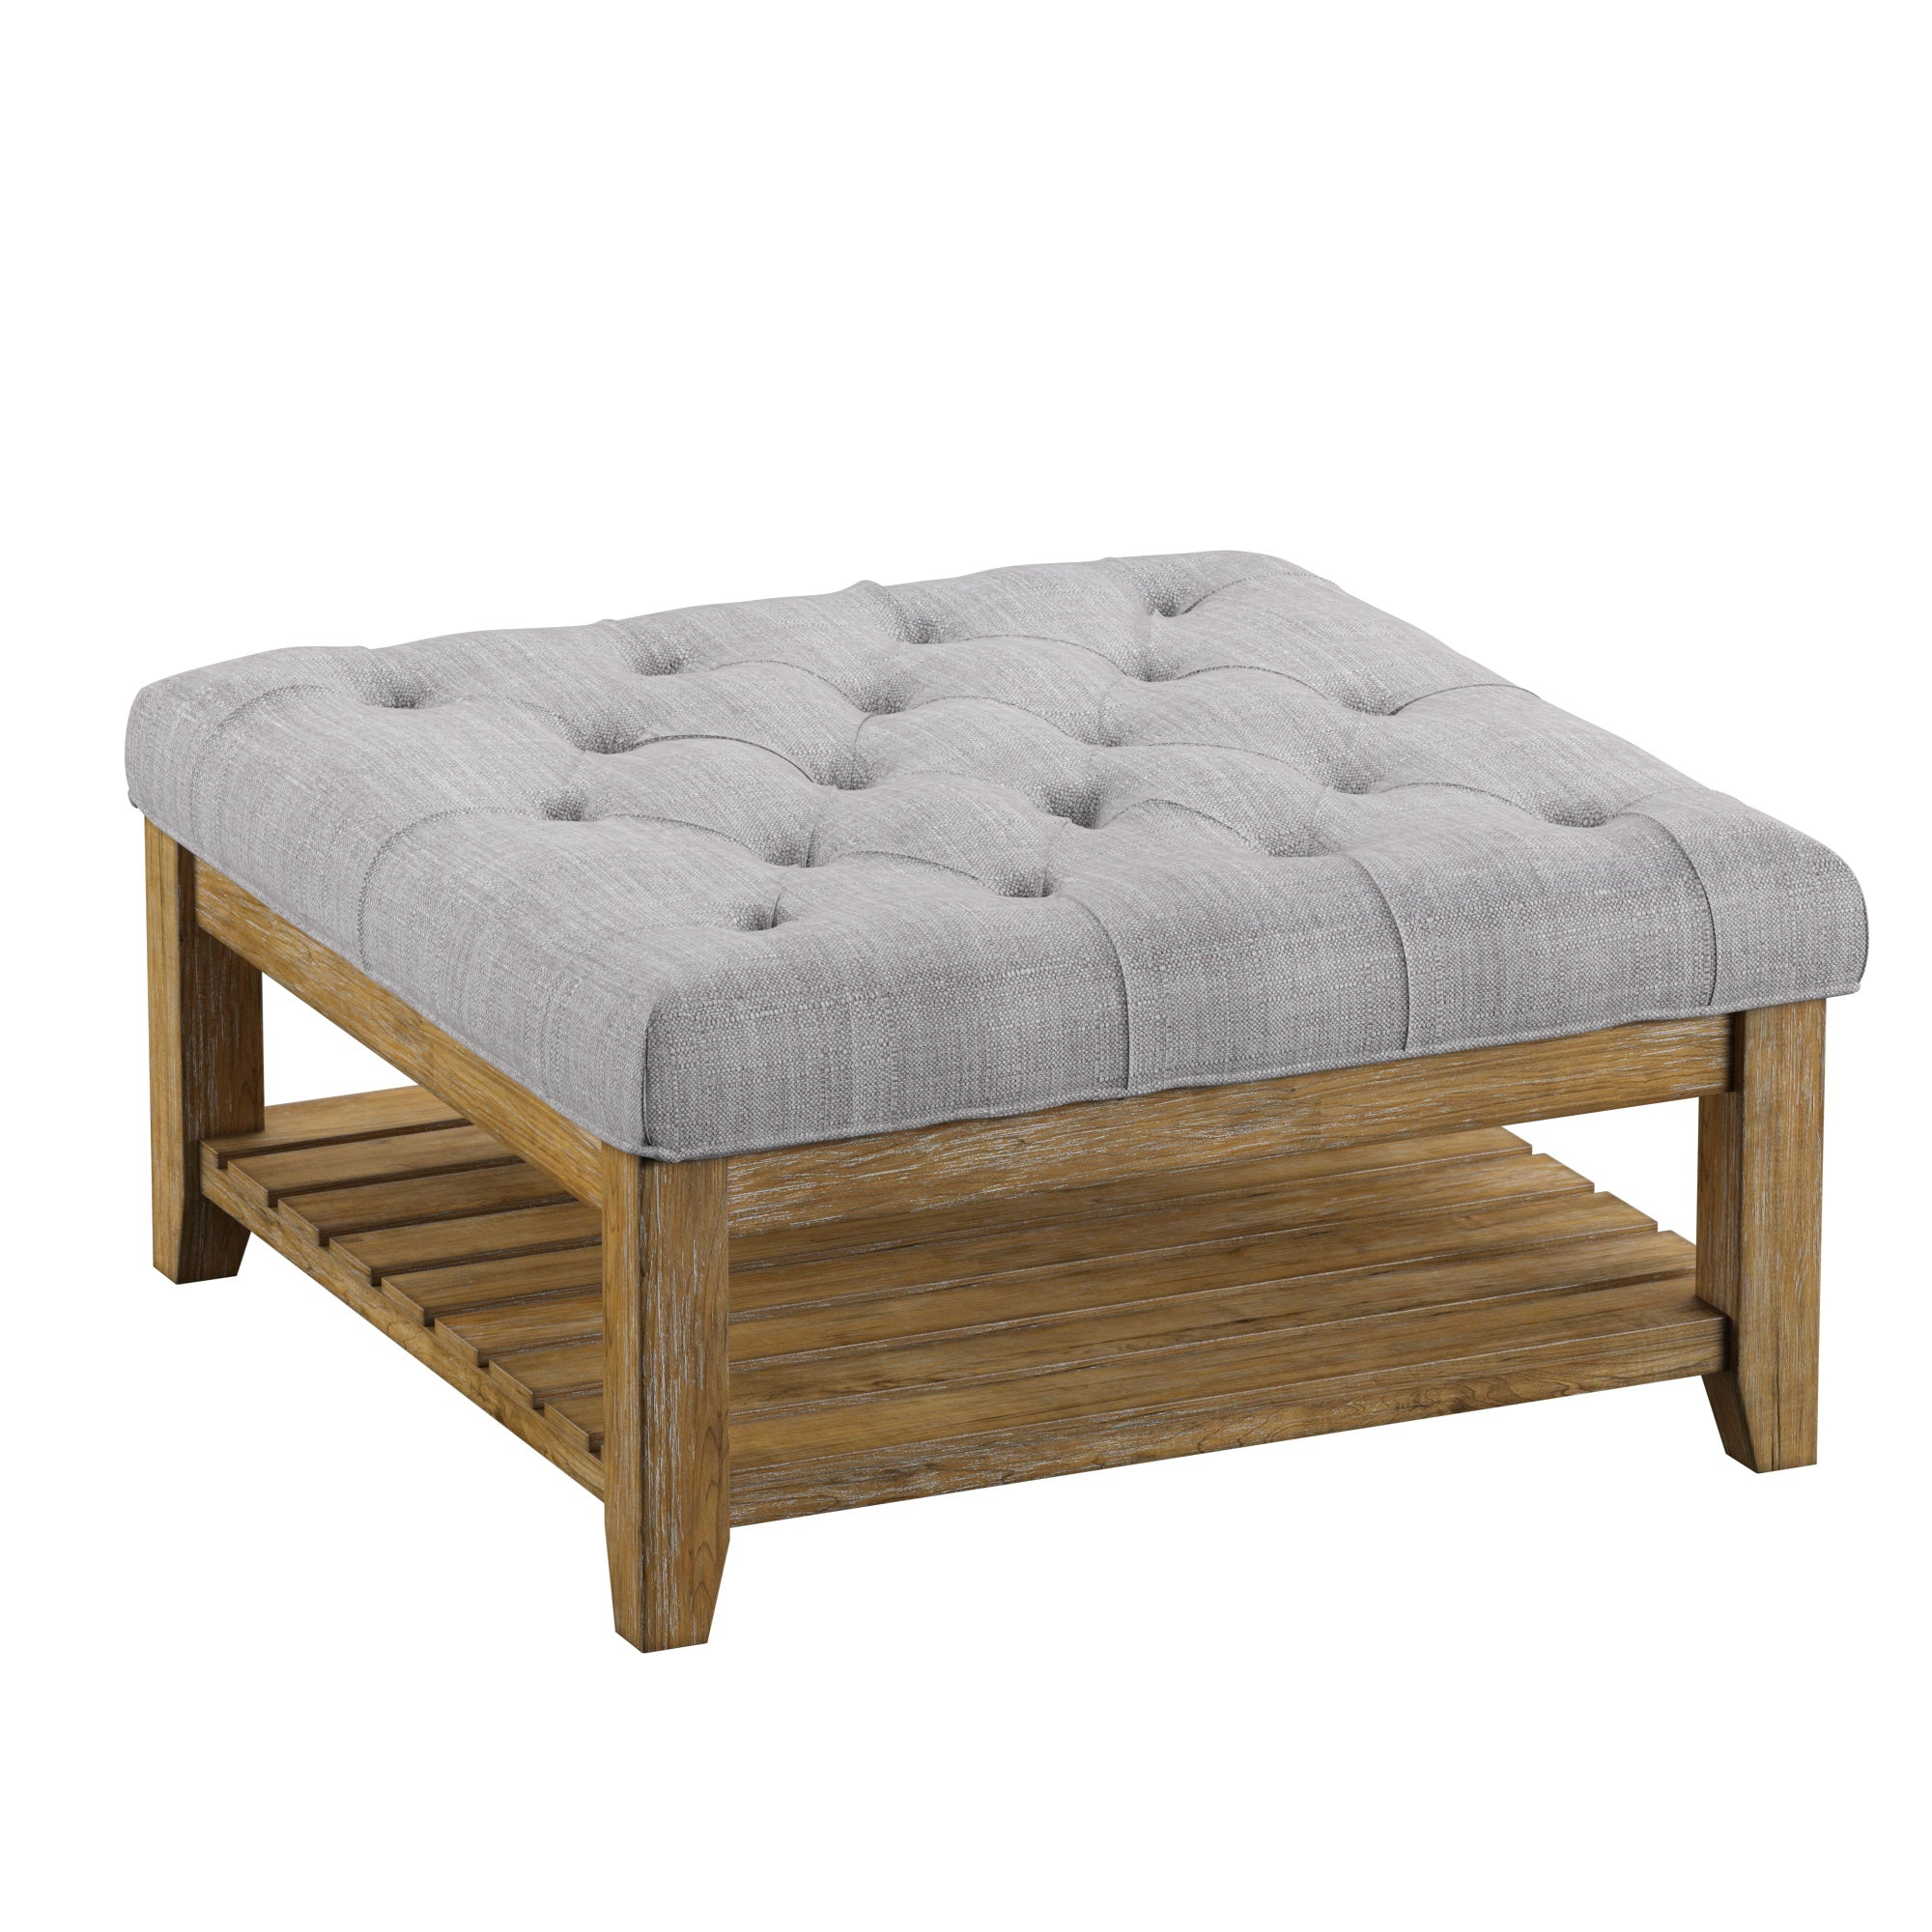 Pine Planked Storage Ottoman Coffee Table - Grey Linen Button Tufts